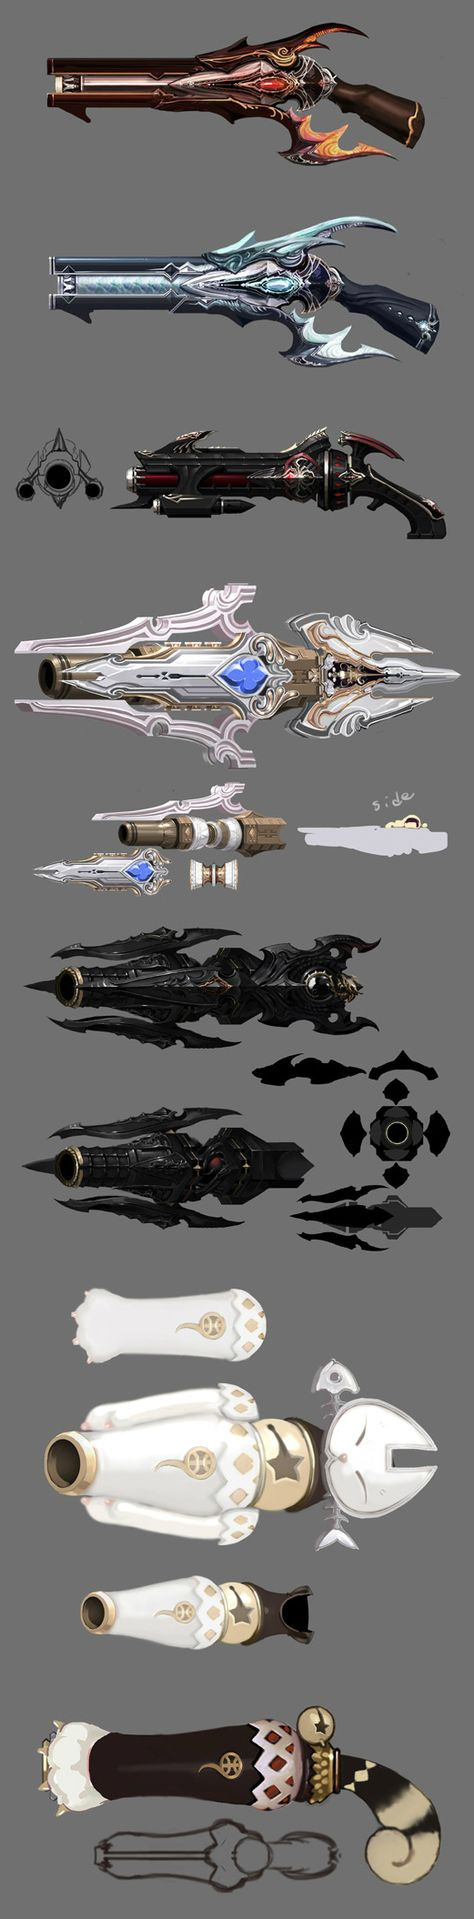 224 best weapons_conceptartandmodels images on Pinterest | Fantasy ...